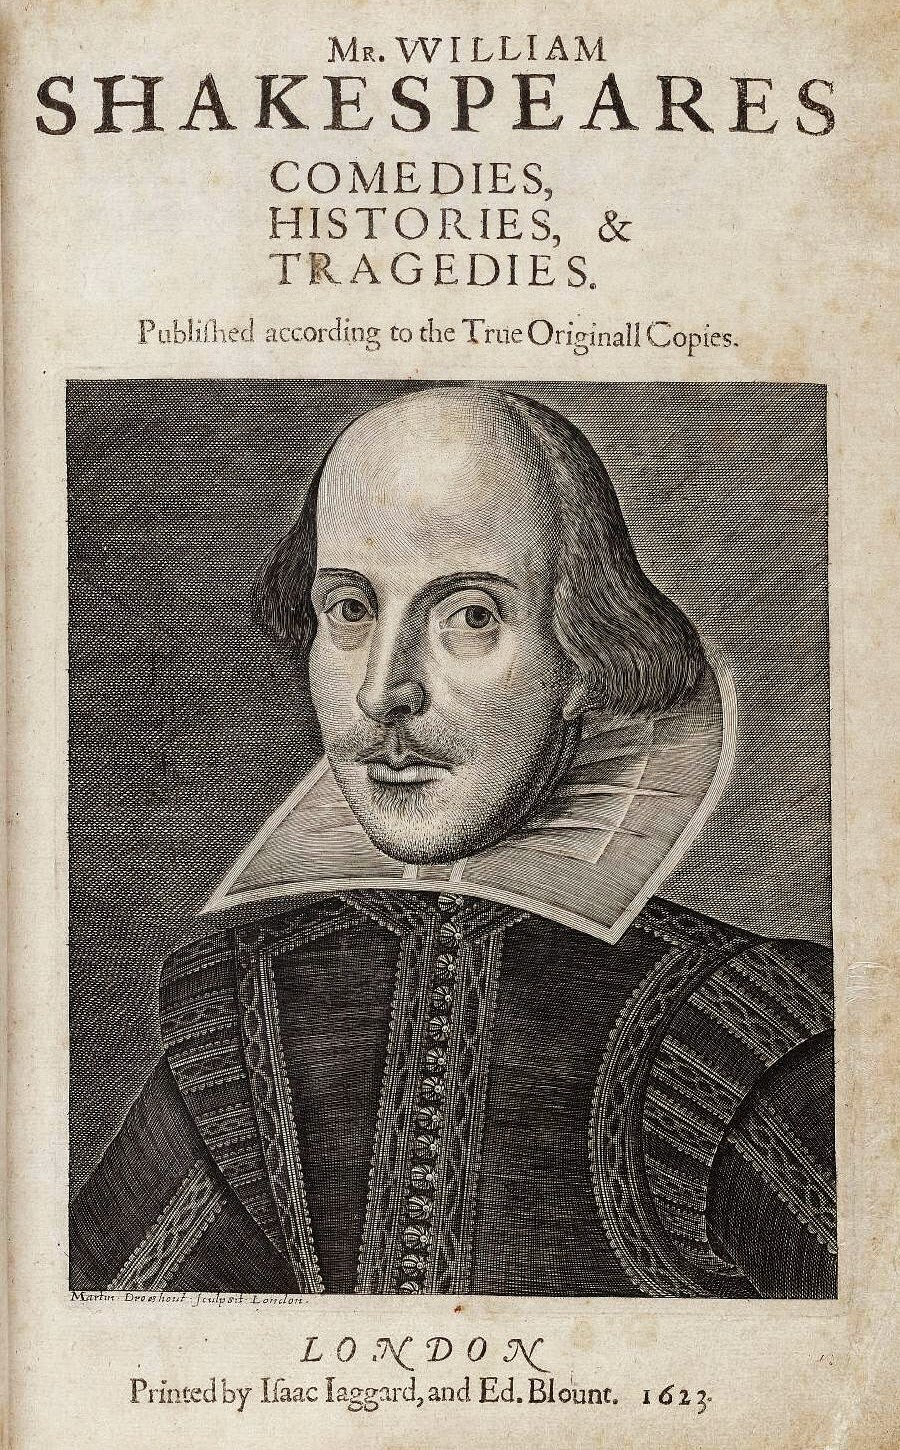 William Shakespeare [Public domain], via Wikimedia Commons